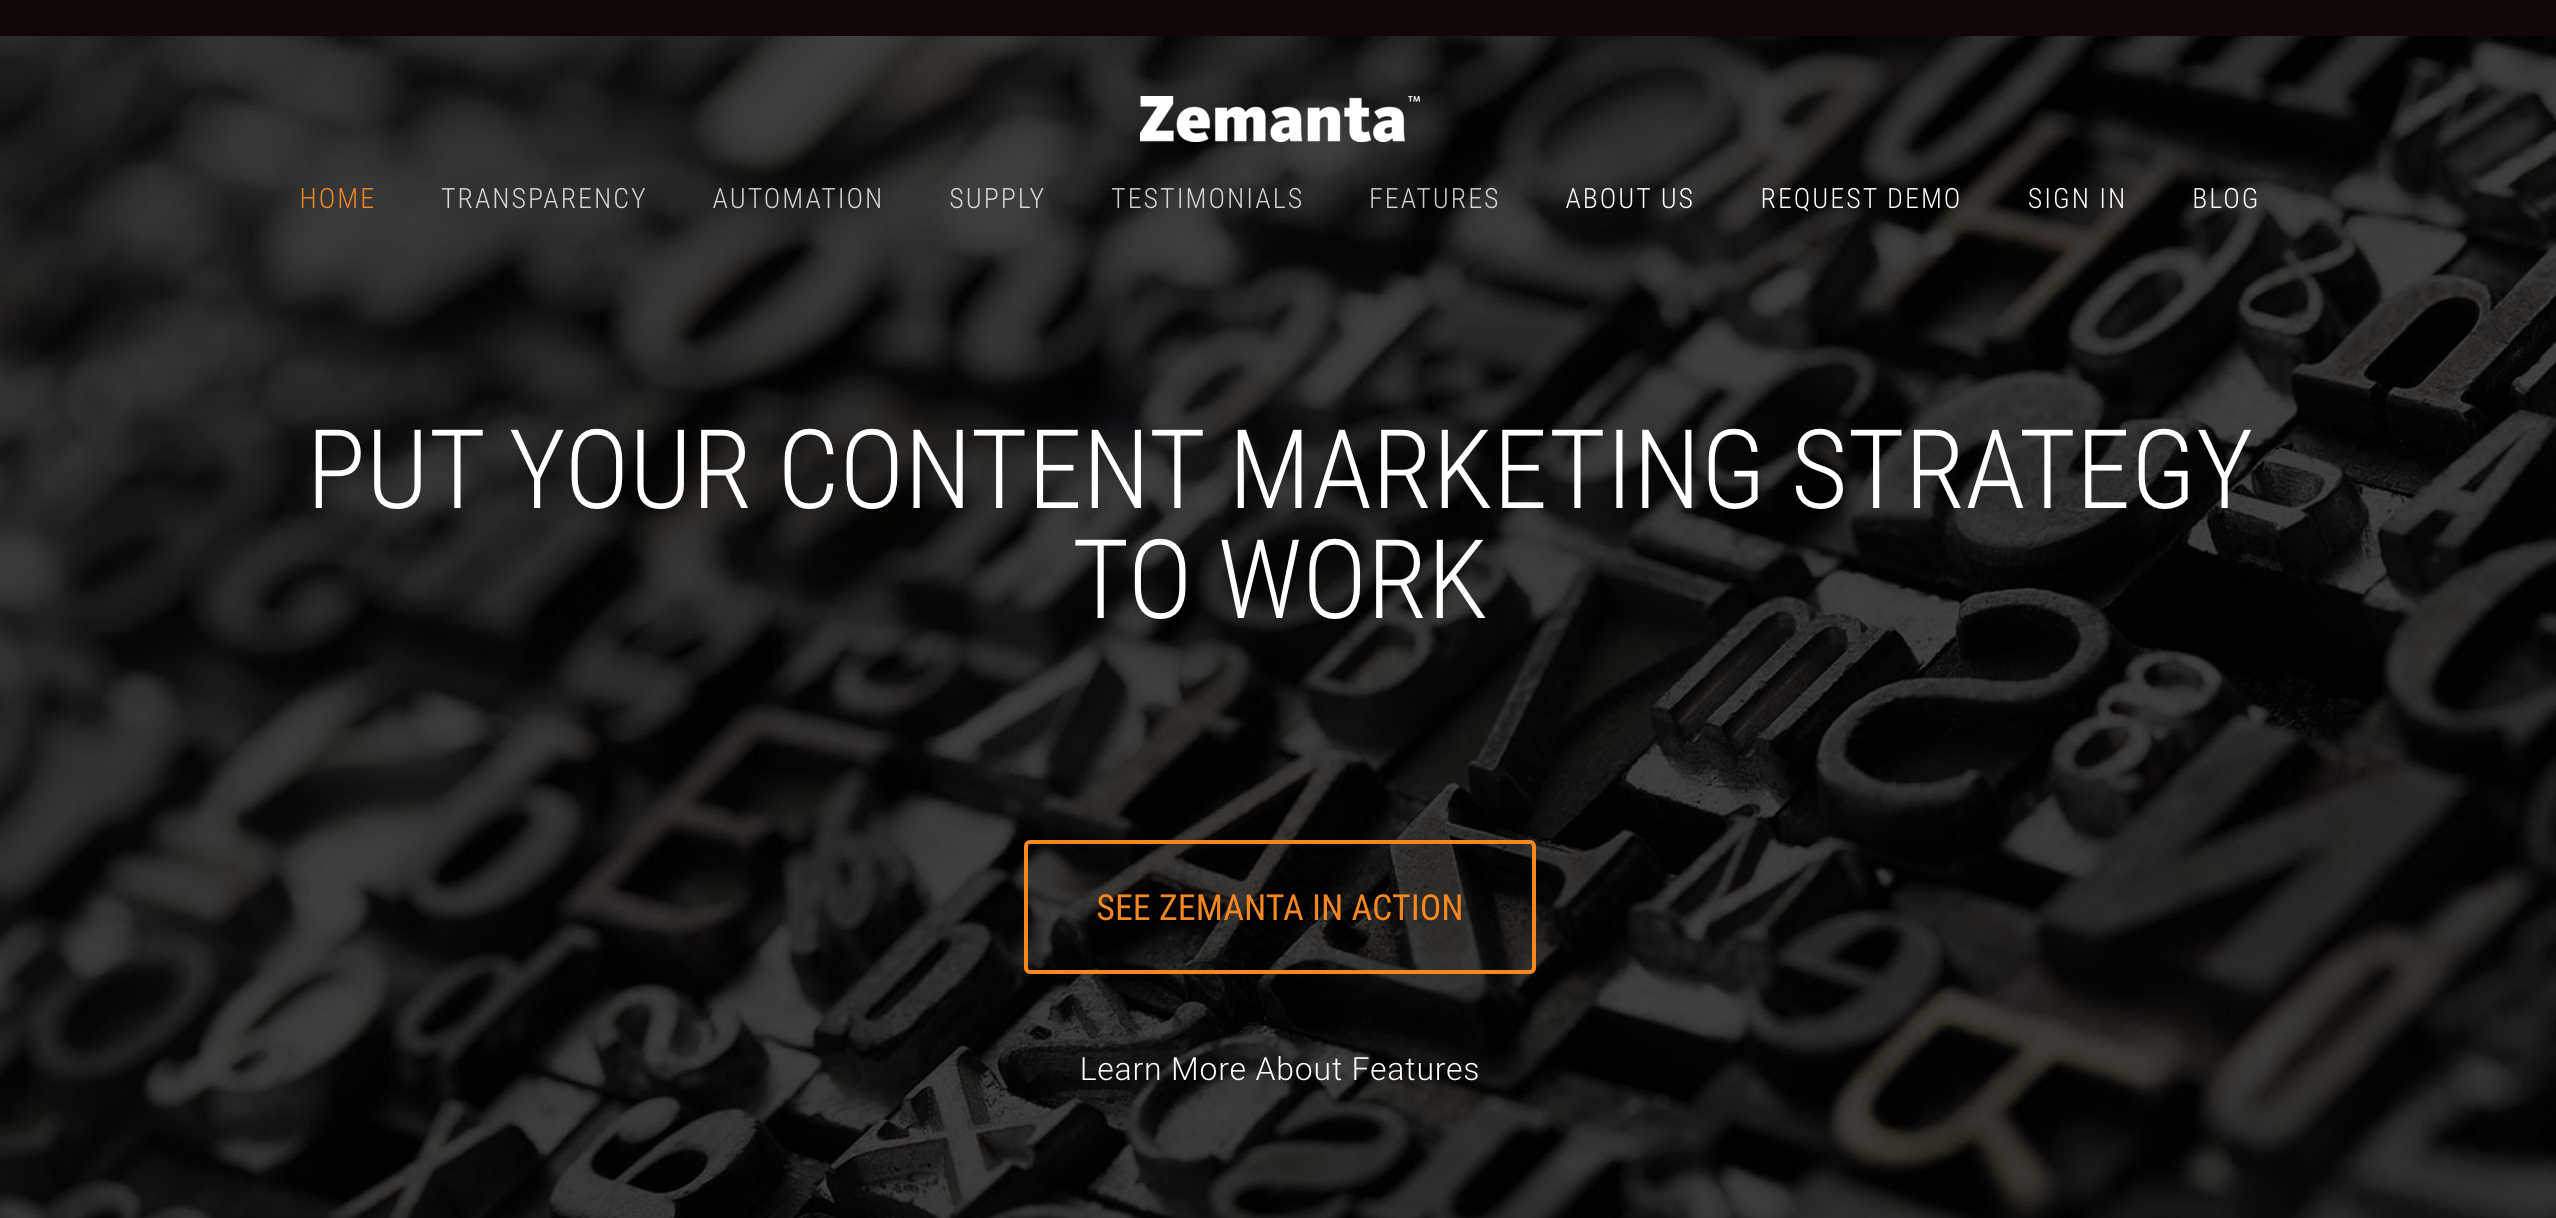 Zemanta paid content marketing tool